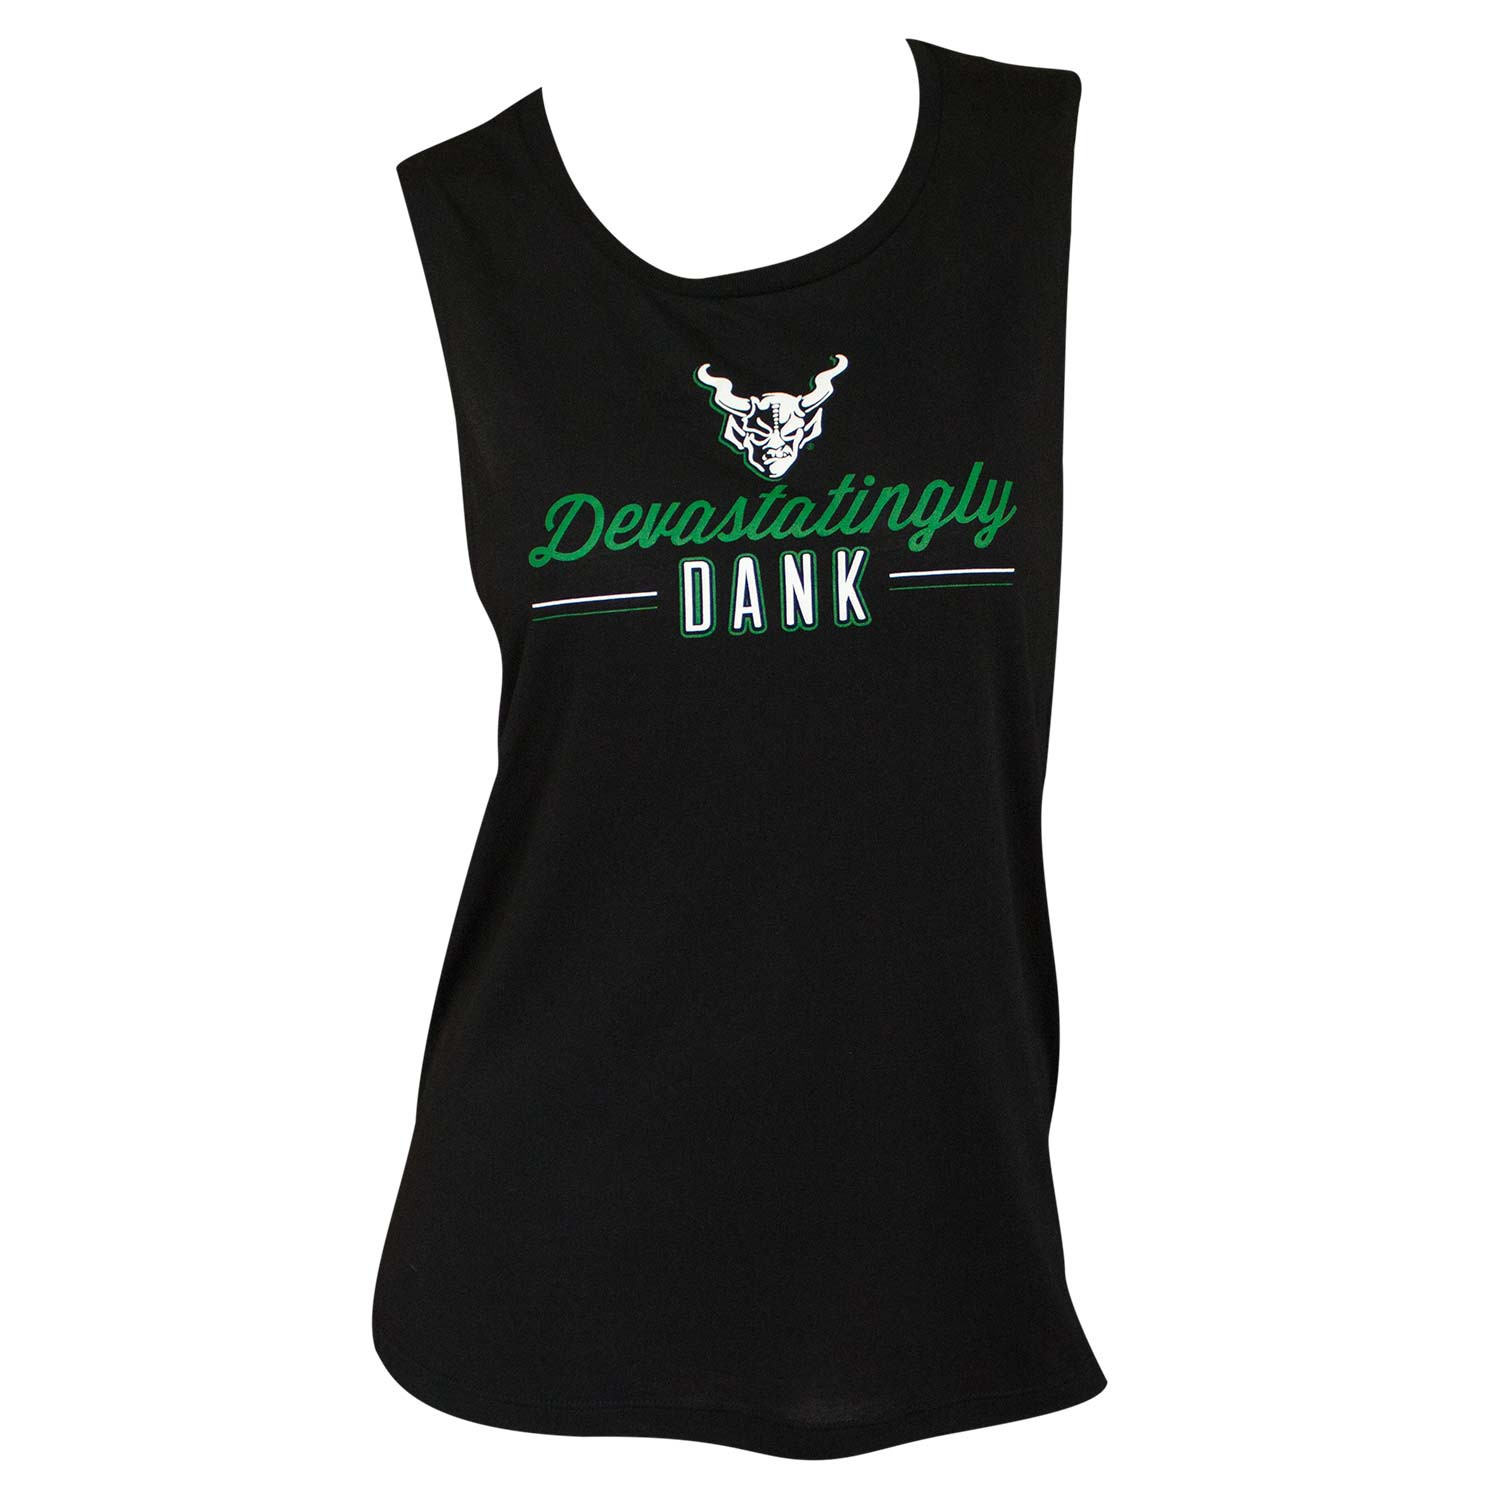 Stone Brewing Co. Devastatingly Dank Ladies Tank Top